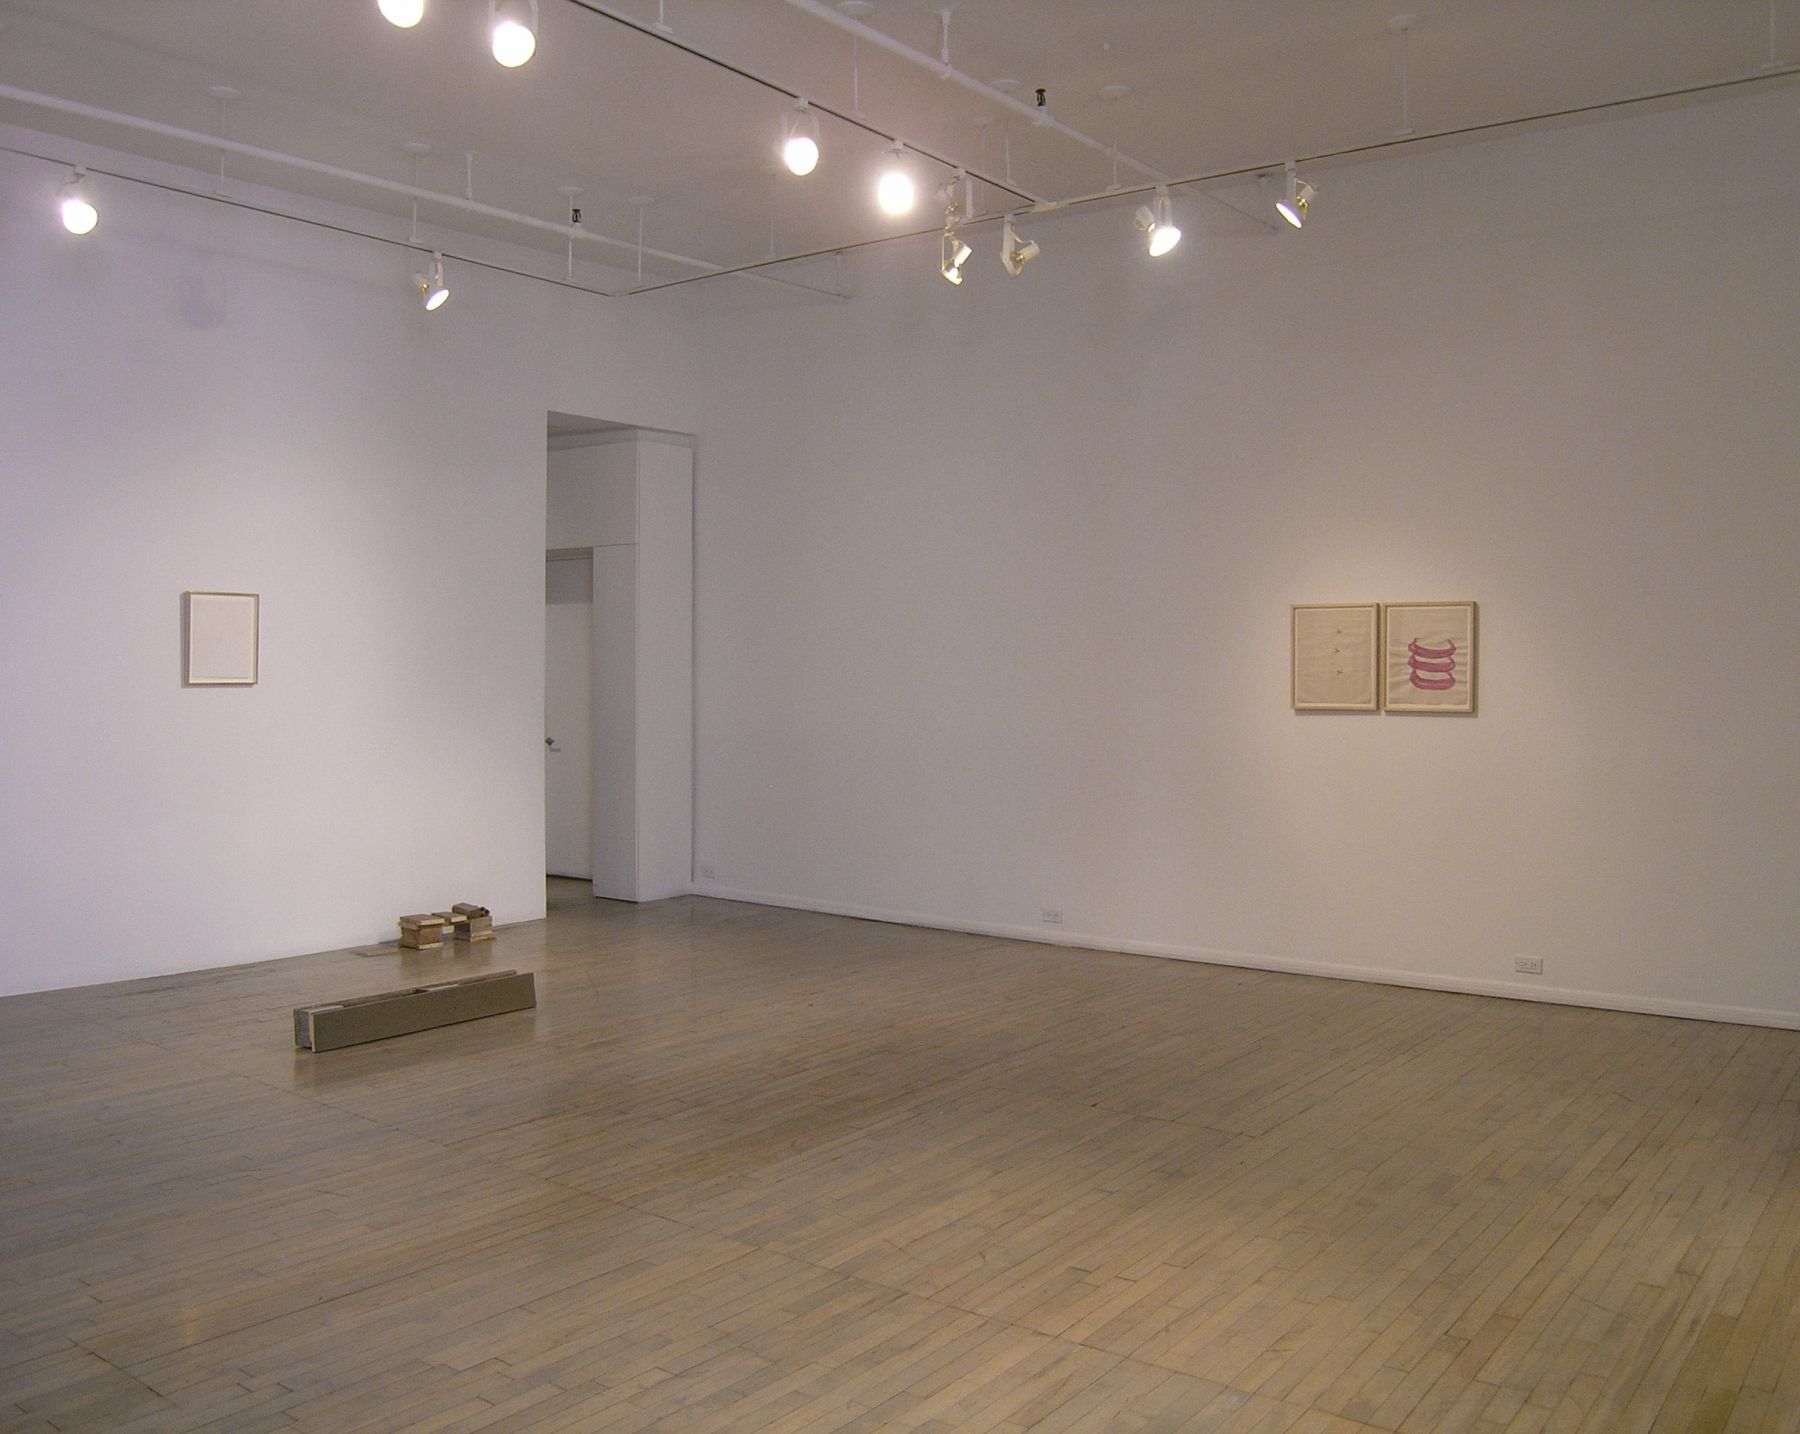 Helen Mirra: Break camp – installation view 1